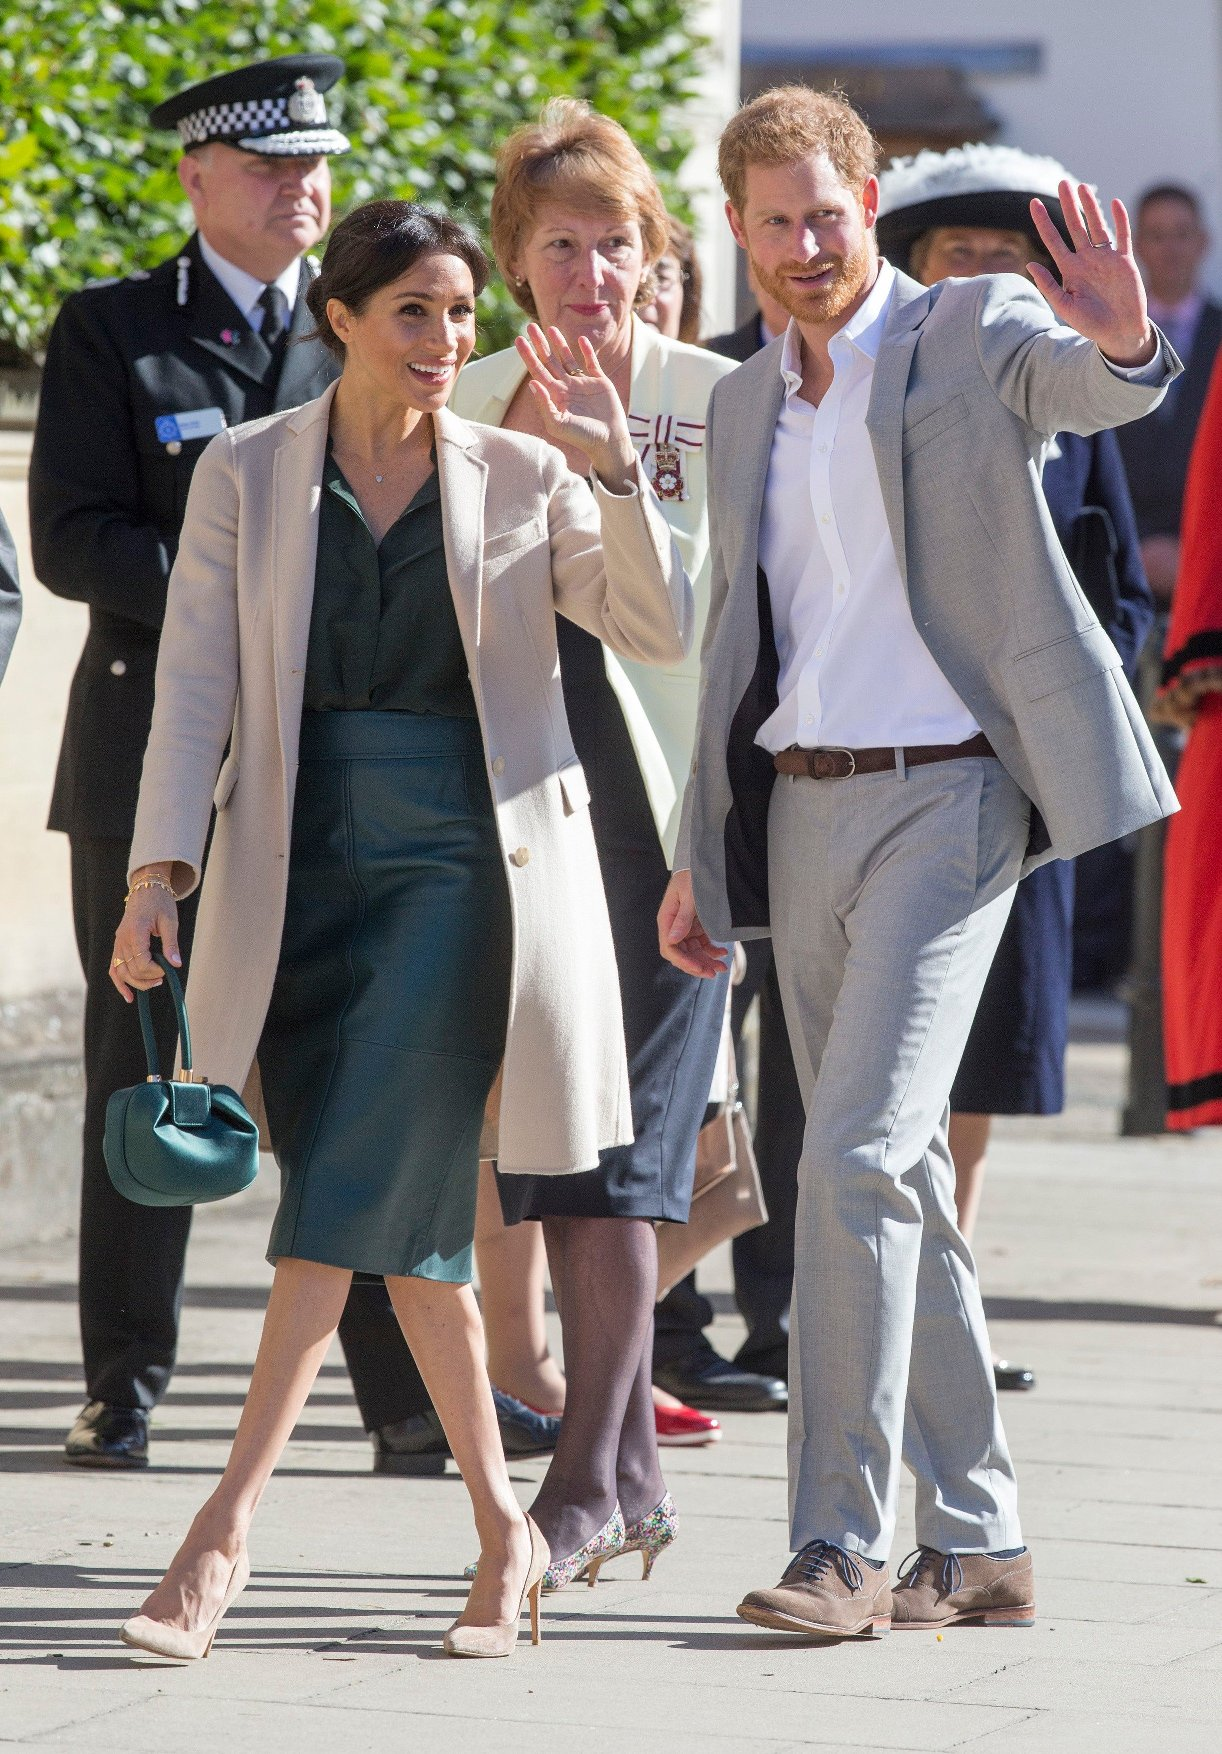 The Duke and Duchess of Sussex visit Chichester in Sussex. Meghan and Prince Harry walk down West Street in the centre of the city meeting members of the public on a walkabout. 03 Oct 2018, Image: 389643511, License: Rights-managed, Restrictions: NO Argentina, Austria, Belgium, Brazil, Chile, China, Colombia, Costa Rica, Czech Republic, Ecuador, France, French Guiana, French Polynesia, French Southern Ter, Germany, Guadeloupe, Guatemala, Honduras, Hungary, Italy, Japan, Luxembourg, Martinique, Mayotte, Mexico, Monaco, Netherlands, Panama, Paraguay, Peru, Poland, Portugal, Reunion, Romania, Russia, San Marino, Slovakia, South Africa, Spain, St Barthelemy, St Maarten, St Pierre & Miquelon, Switzerland, Ukraine, United Kingdom, Uruguay, Venezuela, Model Release: no, Credit line: Profimedia, Mega Agency